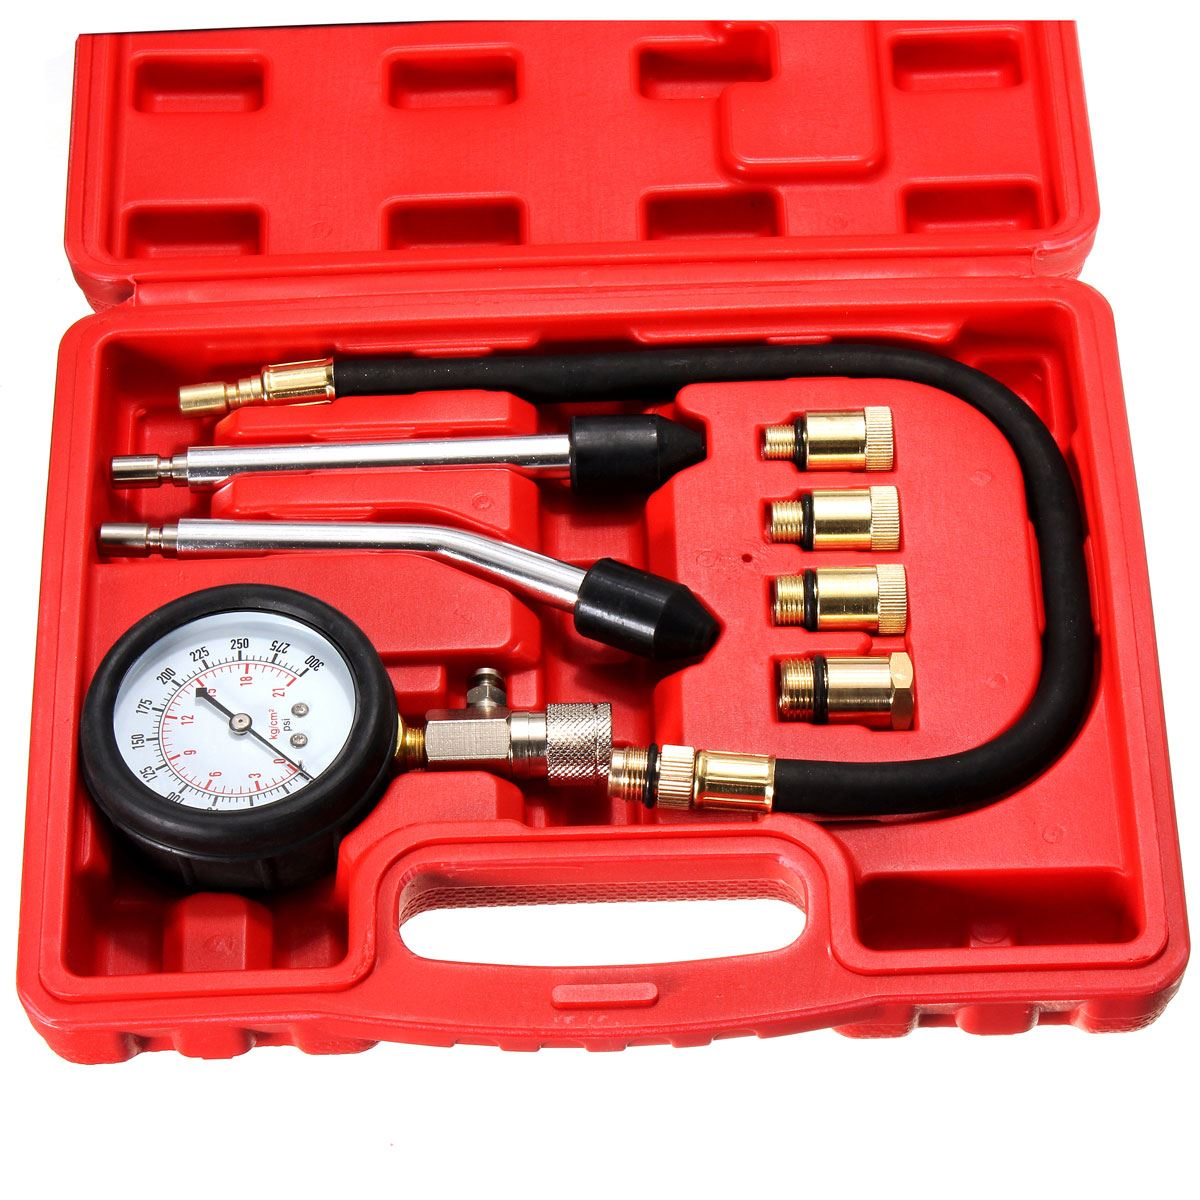 New Automotive Petrol Engine Compression Tester Test Kit Gauge For Car Motorcycle(China (Mainland))